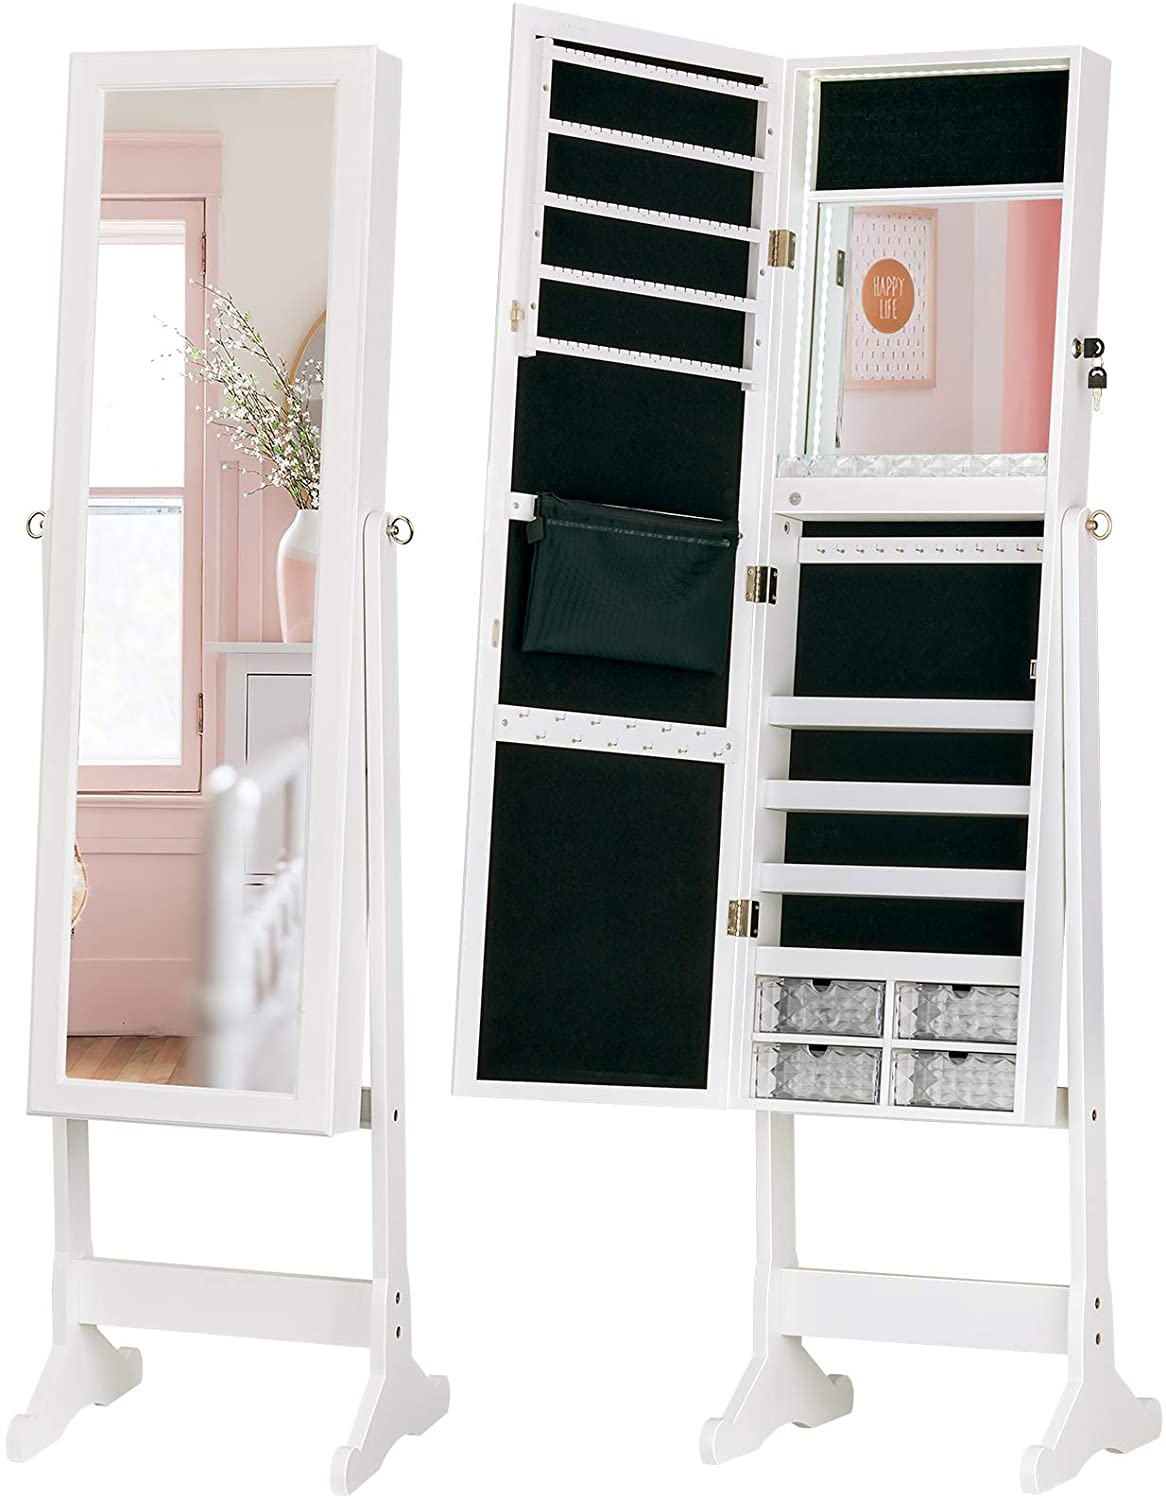 Amazon: LED Light Jewelry Cabinet Standing Mirror Makeup Lockable Armoire, Just $109.7 (Reg $159.90) after code and coupon!